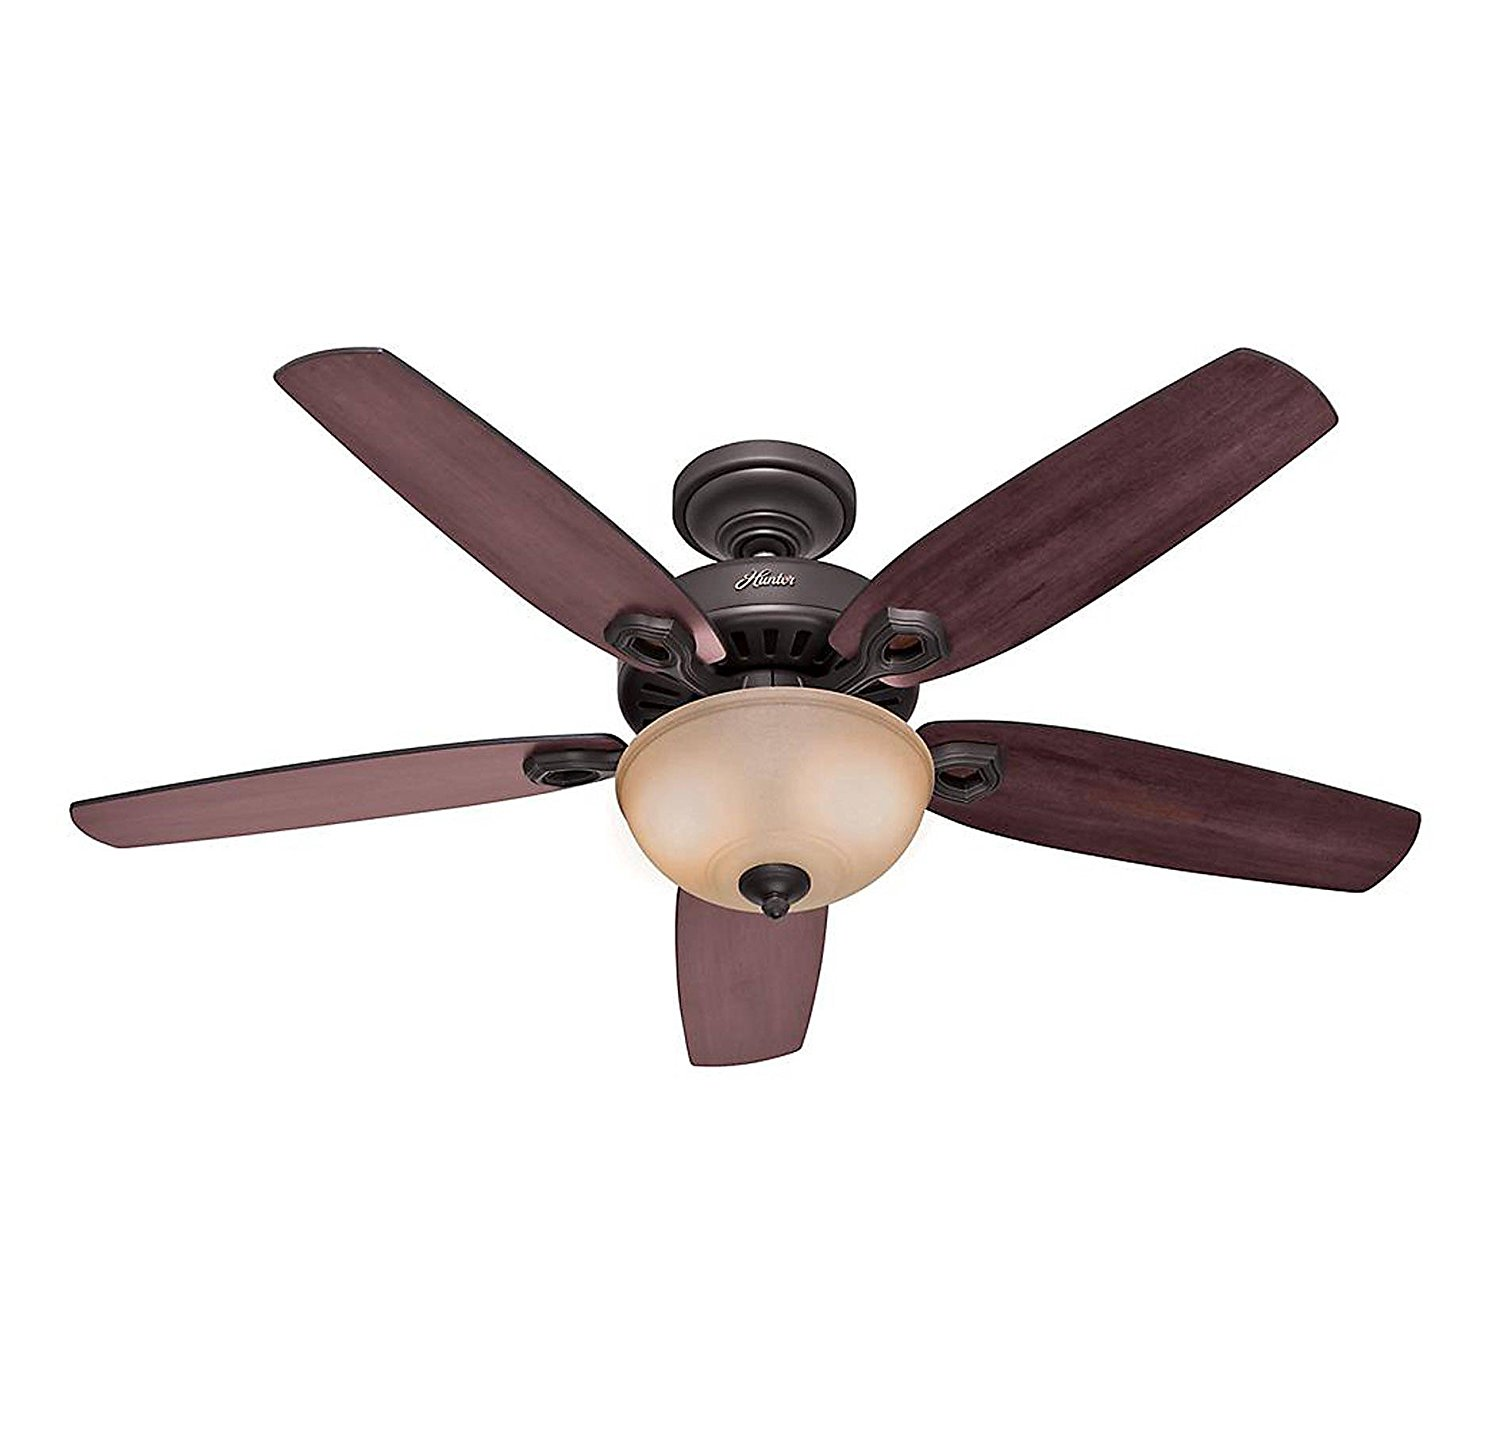 Lighting Fans: Quiet Ceiling Fans With Lights - Decorative Design